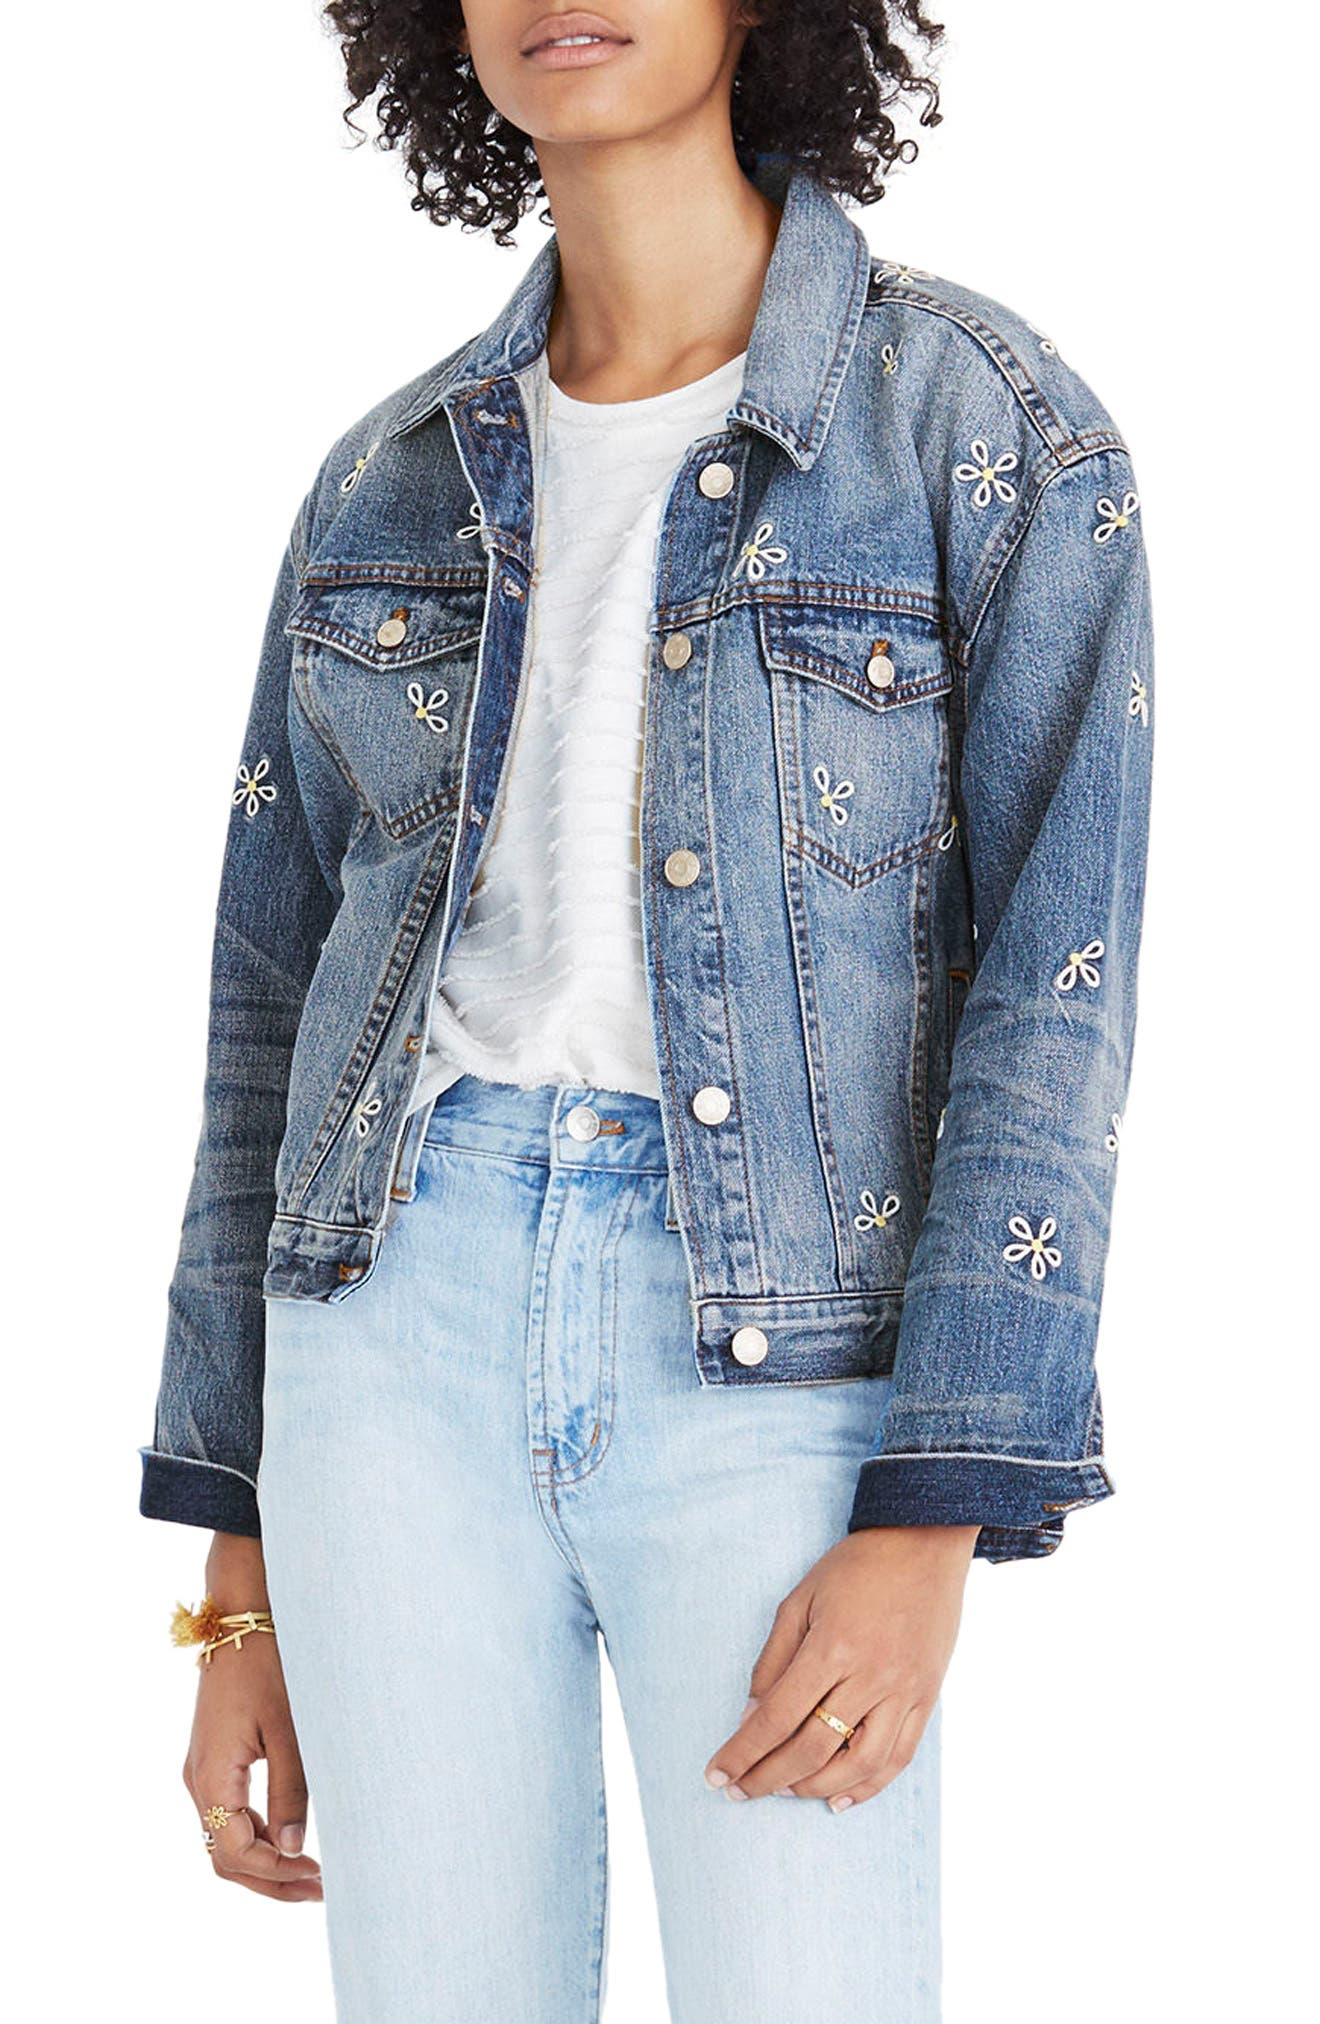 Madewell Daisy Embroidered Boxy Crop Denim Jacket